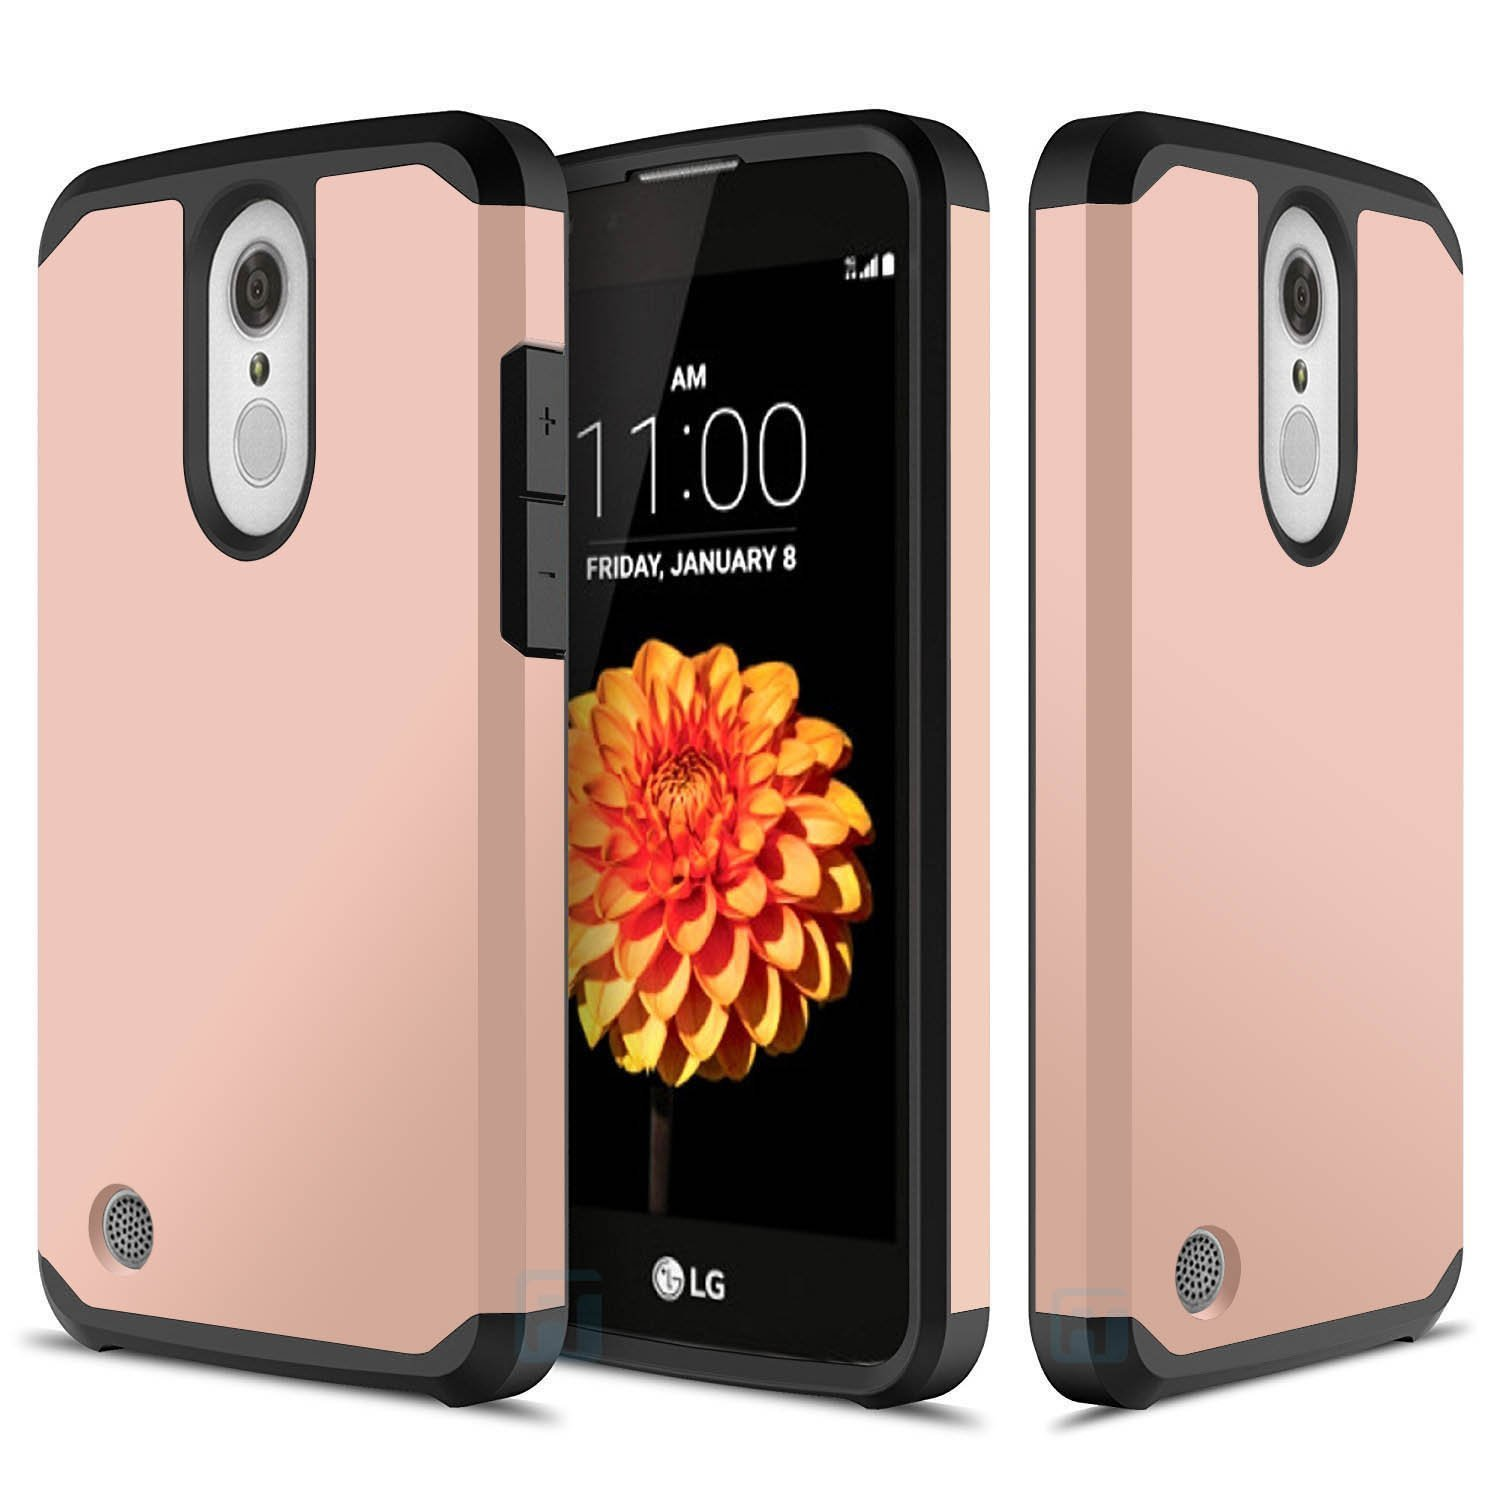 LG K20 Plus, LG K20 V, LG Harmony, LG Grace, LG K10 2017, ATUS - Hybrid Dual Layer Hard Cover TPU Case With HD Screen Protector (RoseGold/Black)